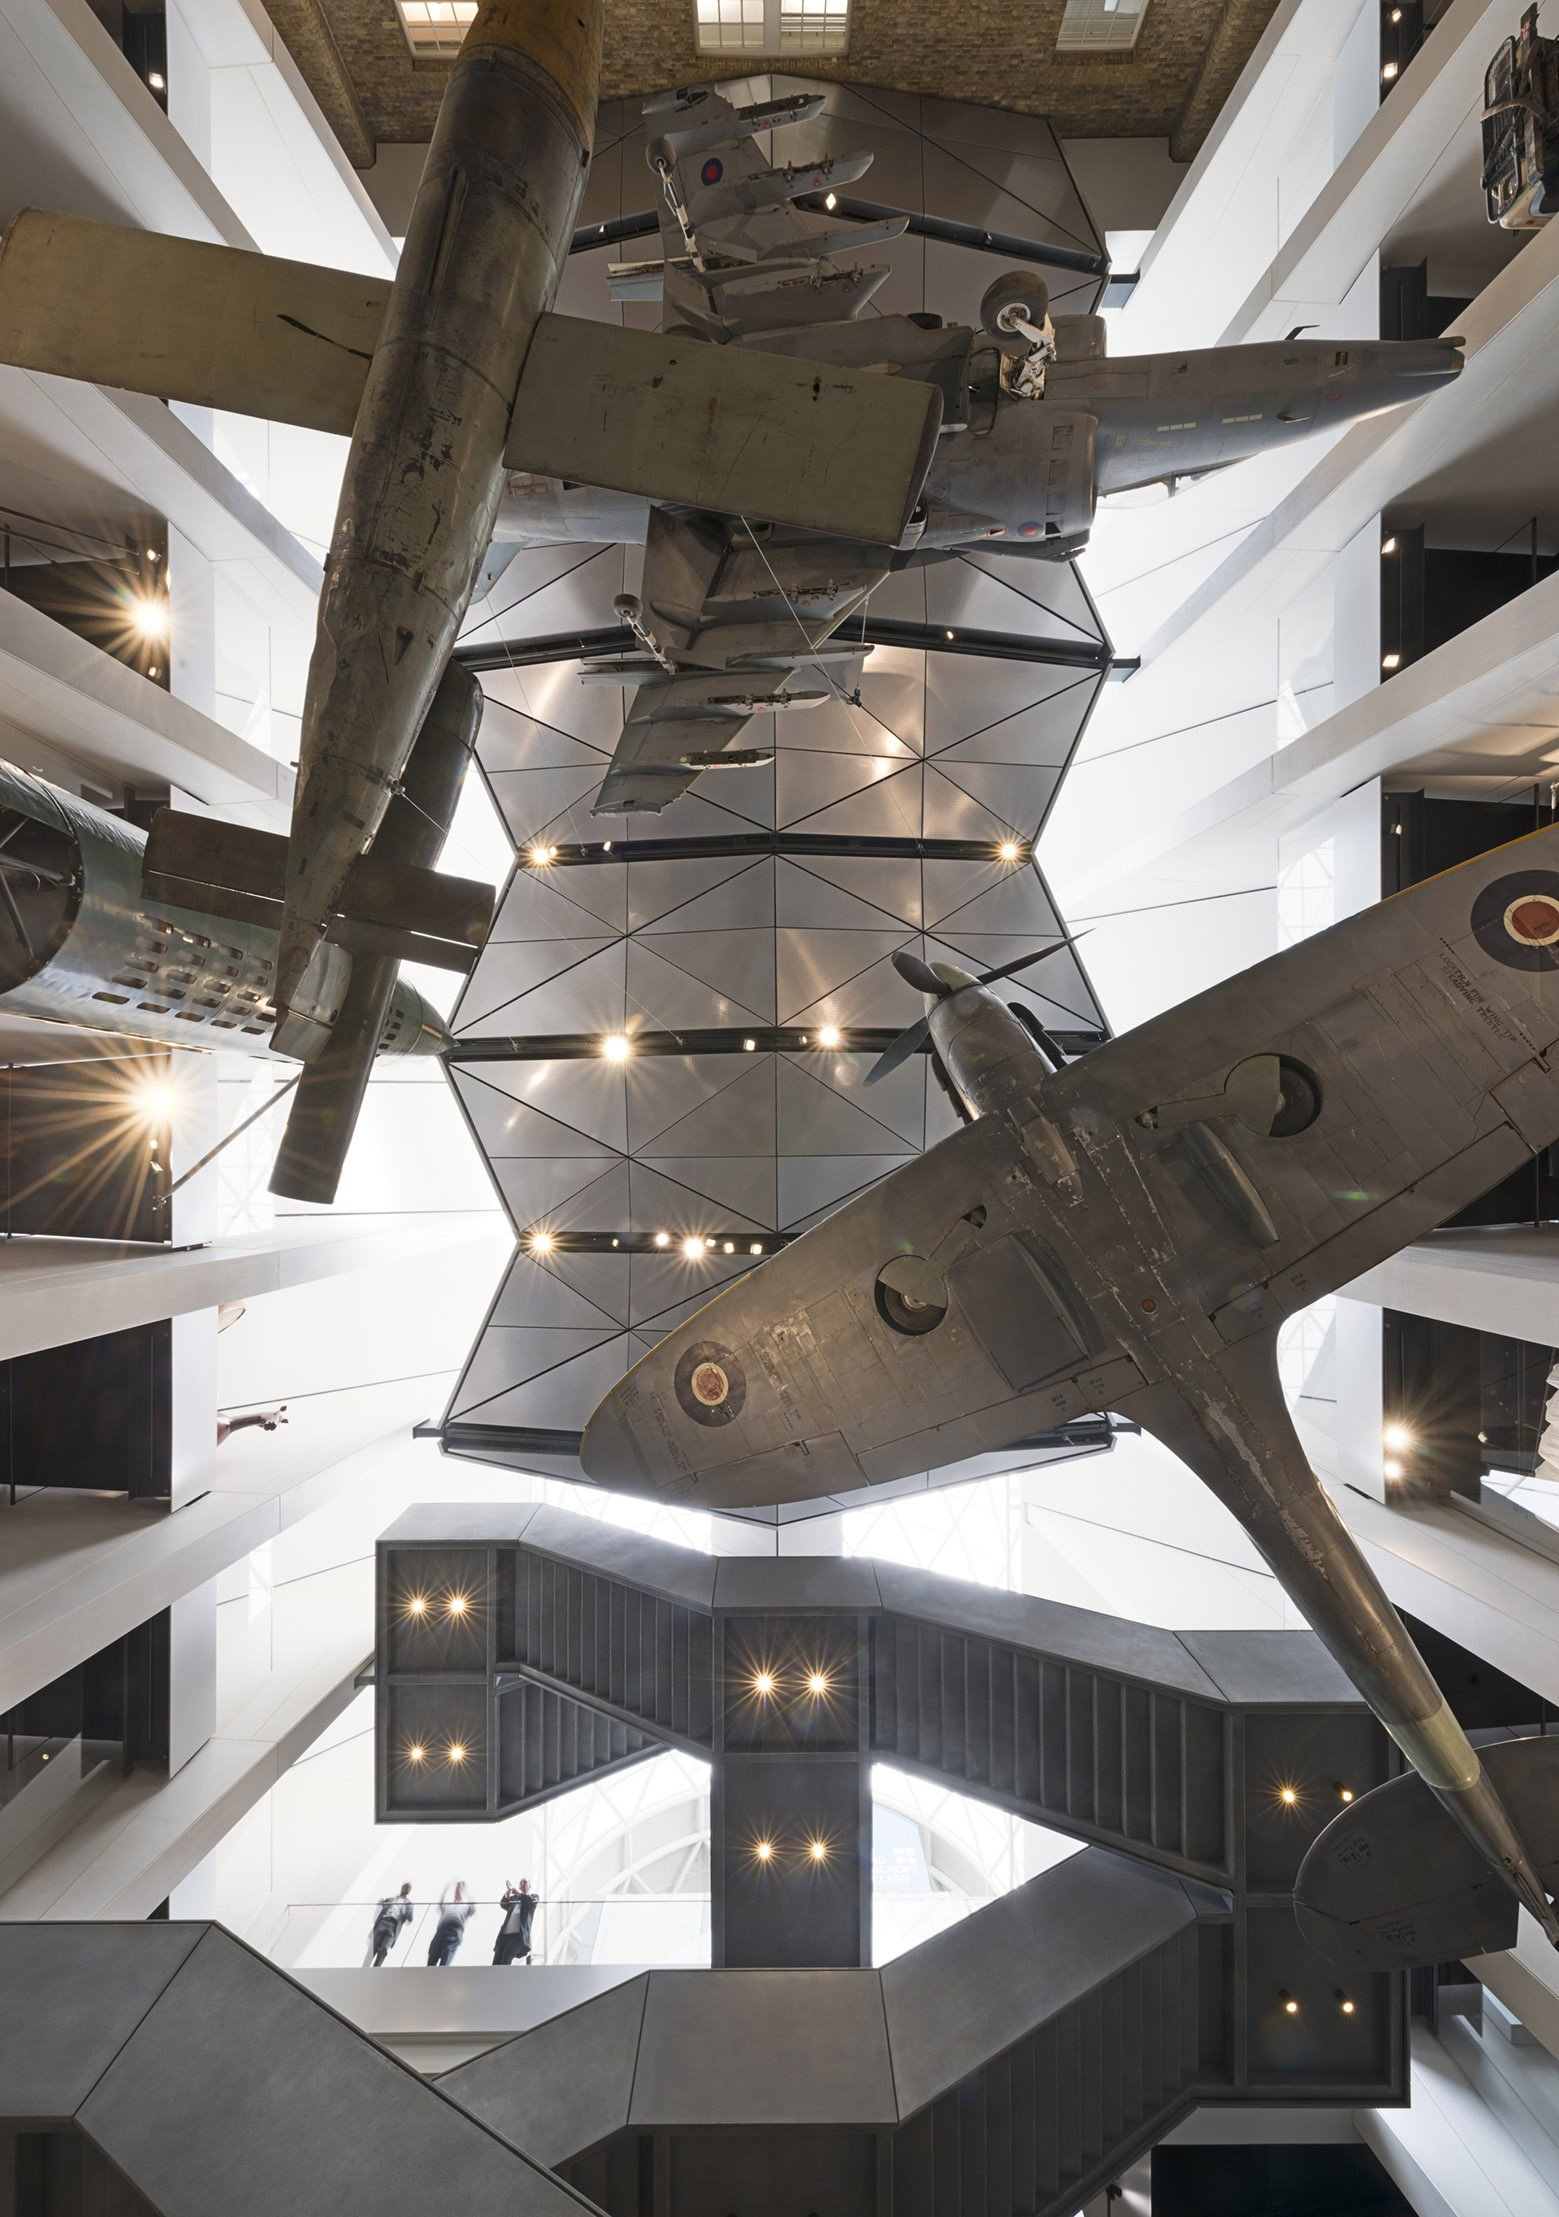 Imperial War Museum — London